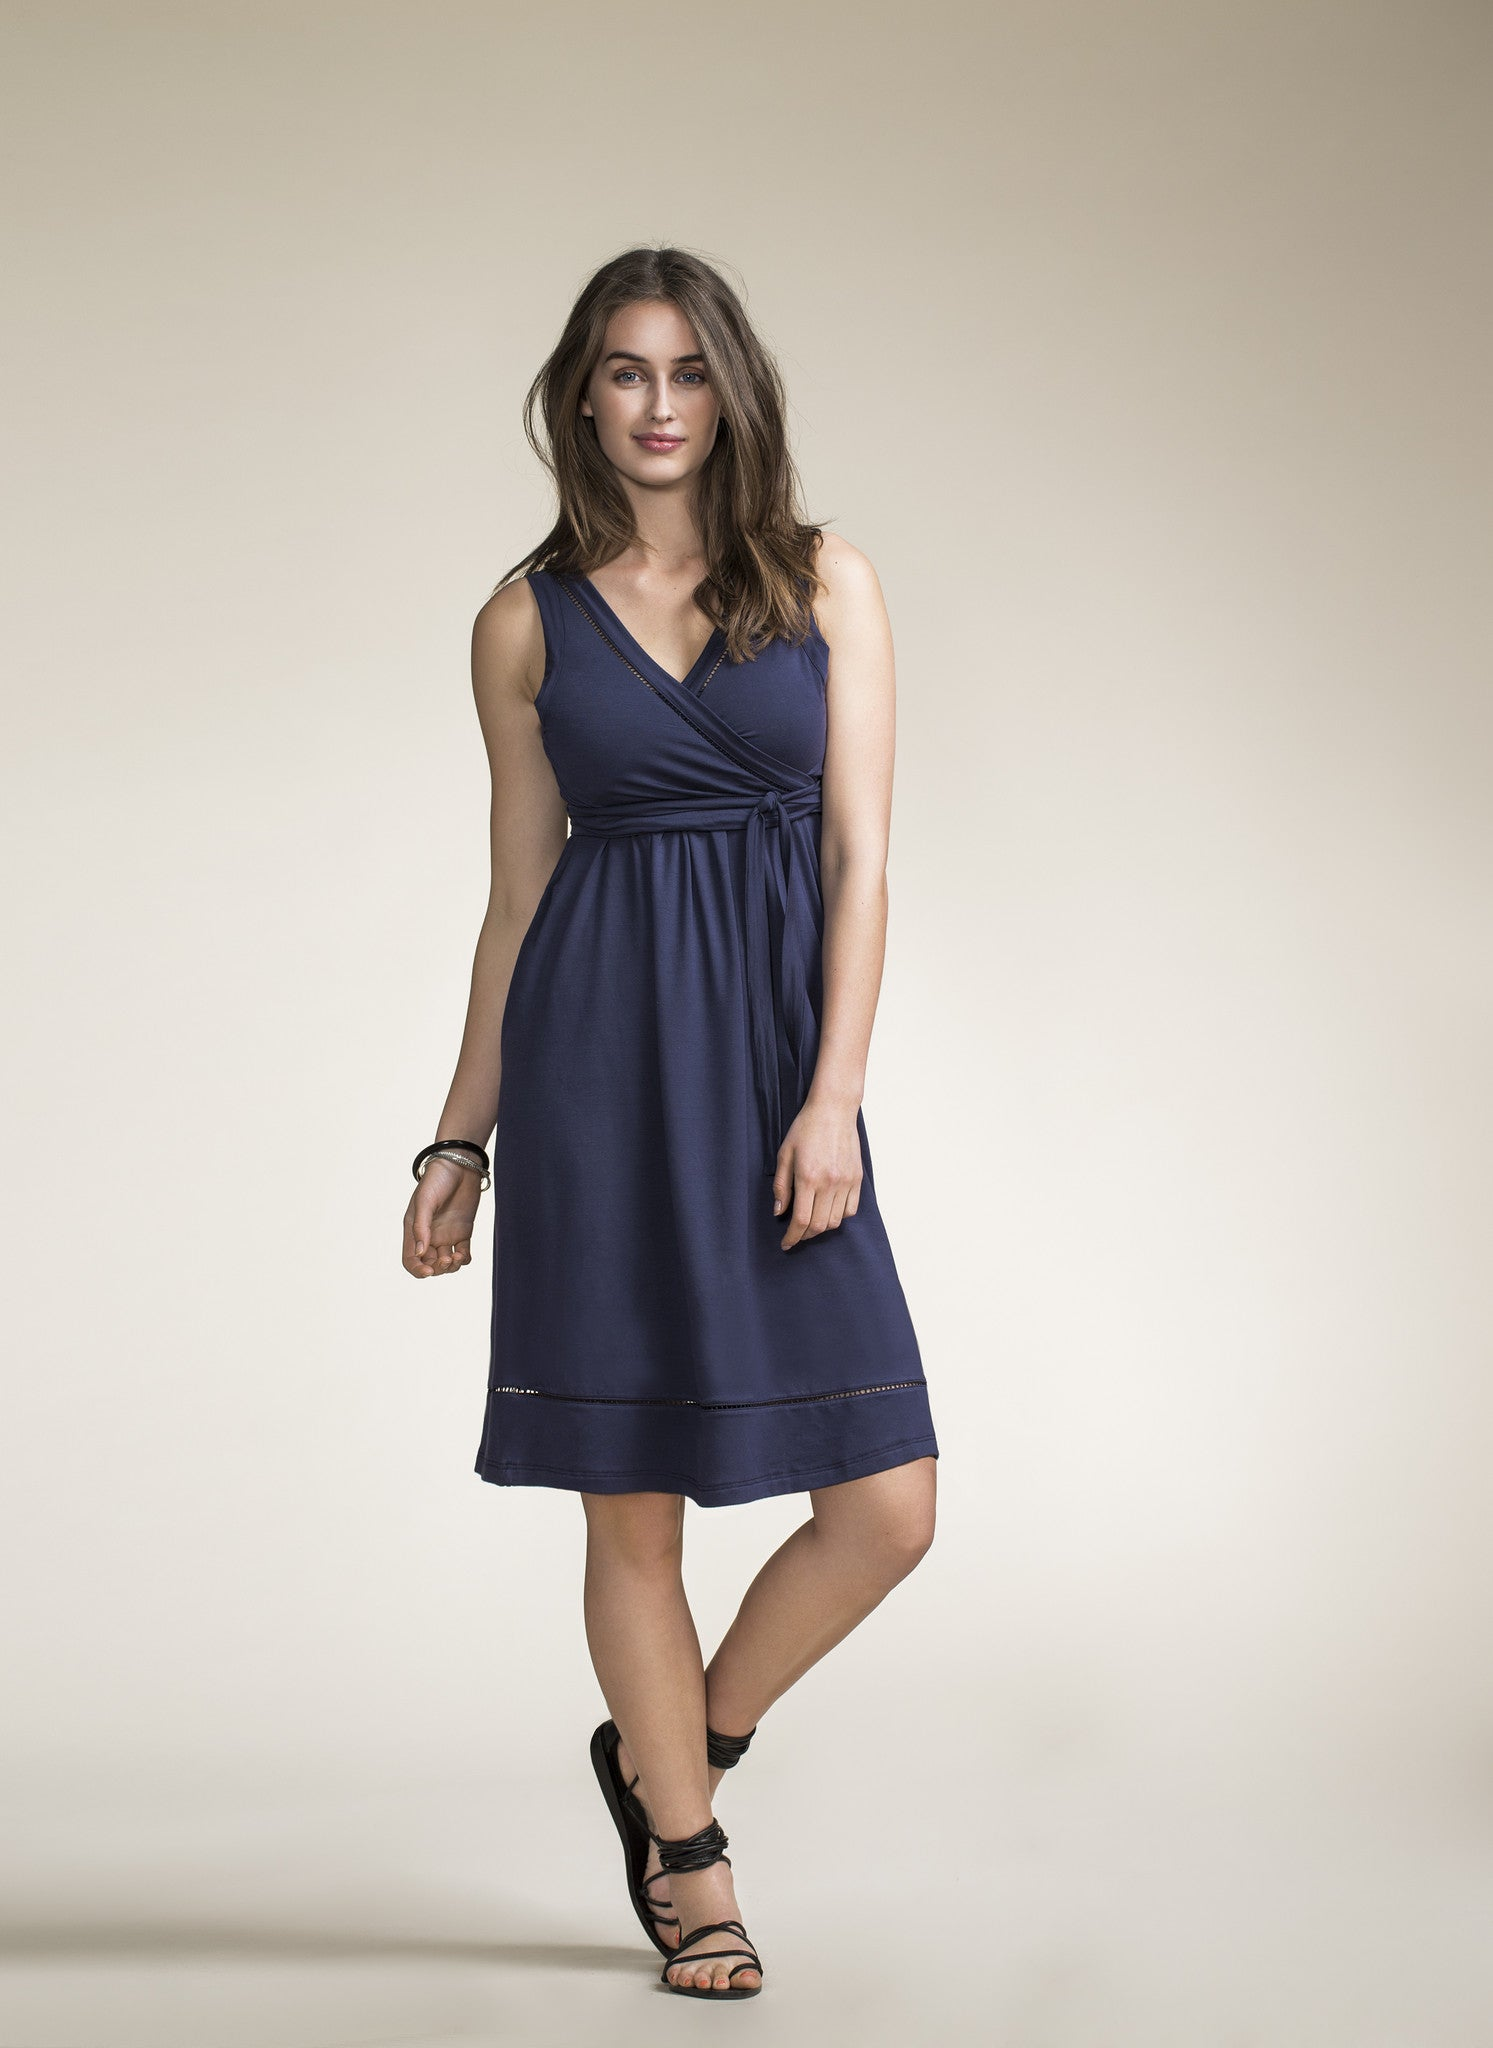 Maternity and nursing dress Juno [it] Abito senza maniche premaman e allattamento Juno